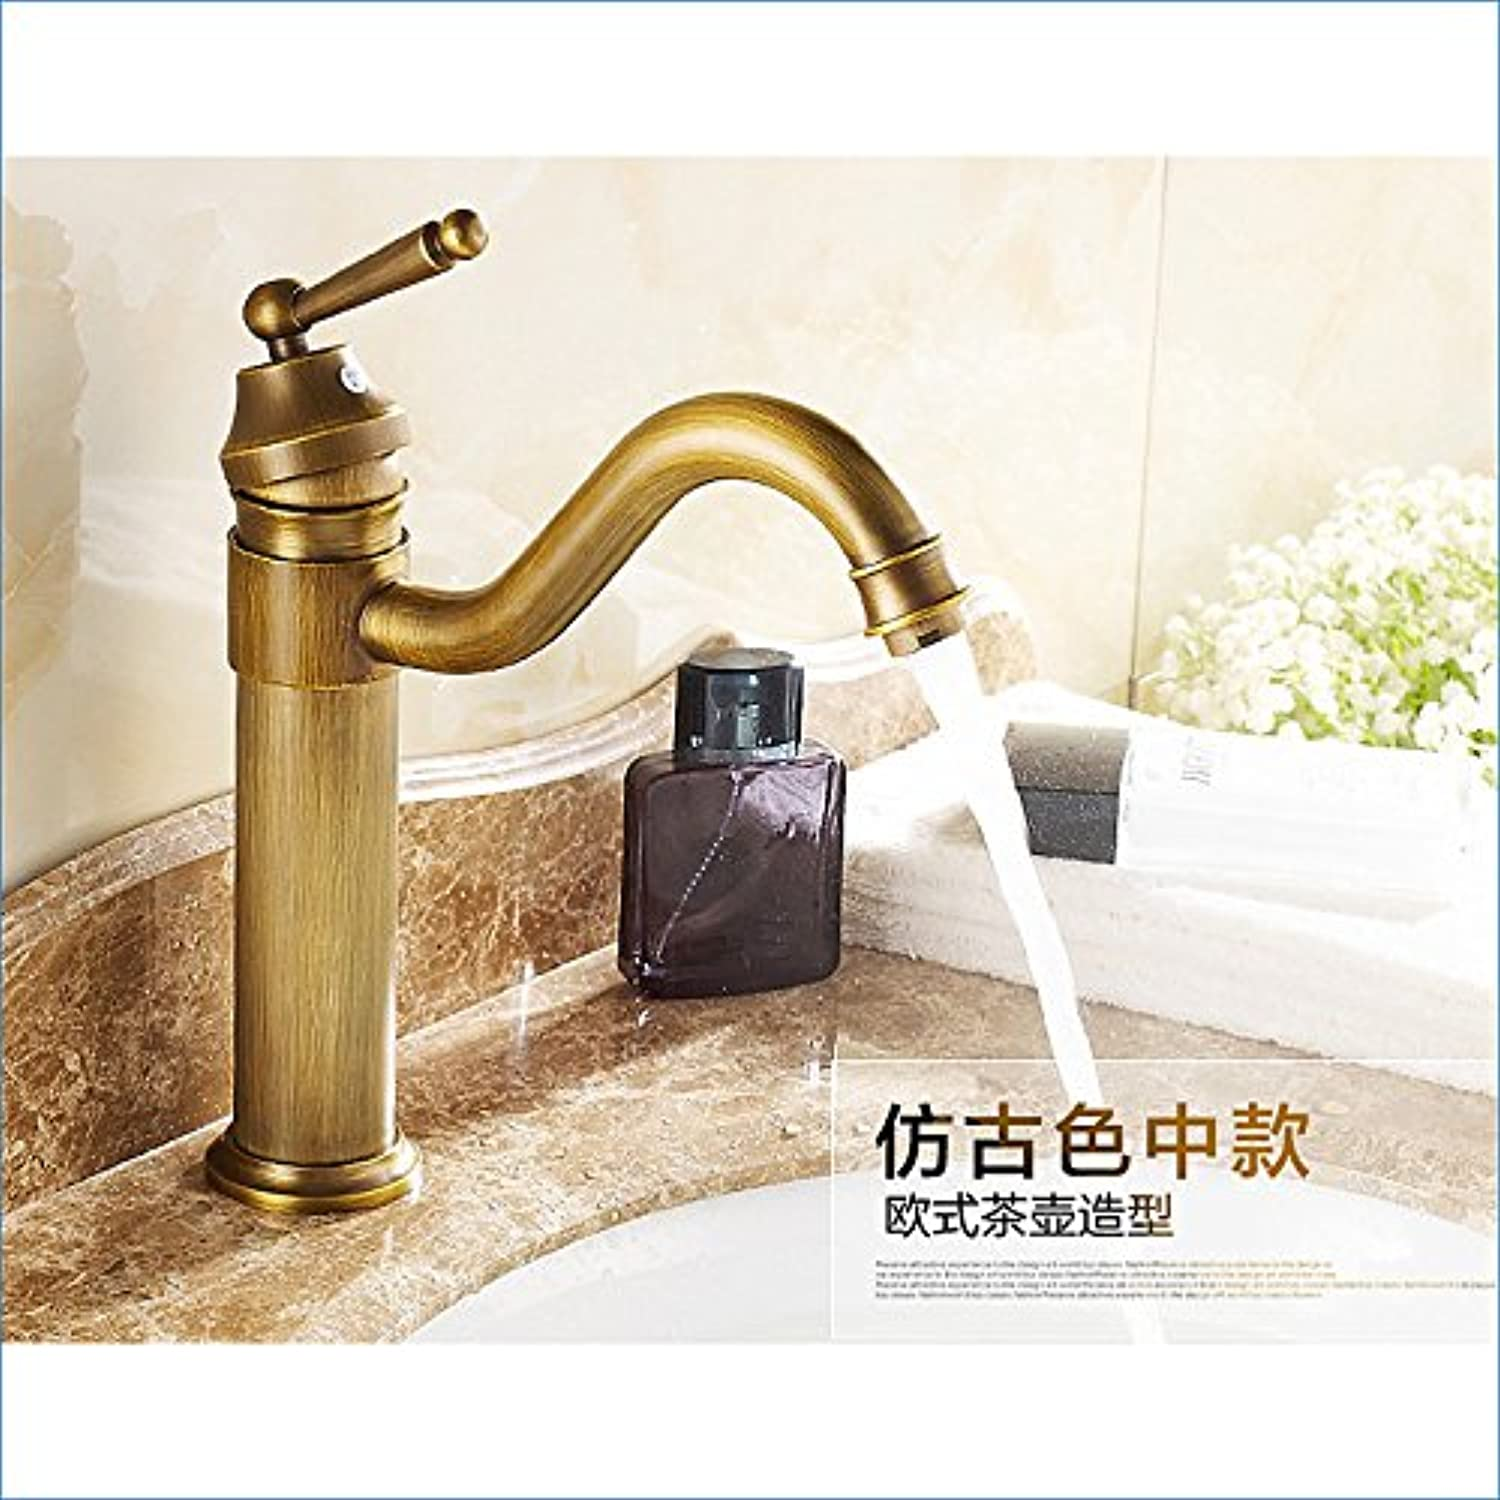 U-Enjoy Single Handle Brass Top Quality Mixer Retro Faucet Copper Home Bathroom Kitchen Mixer Tap (Free Shipping)